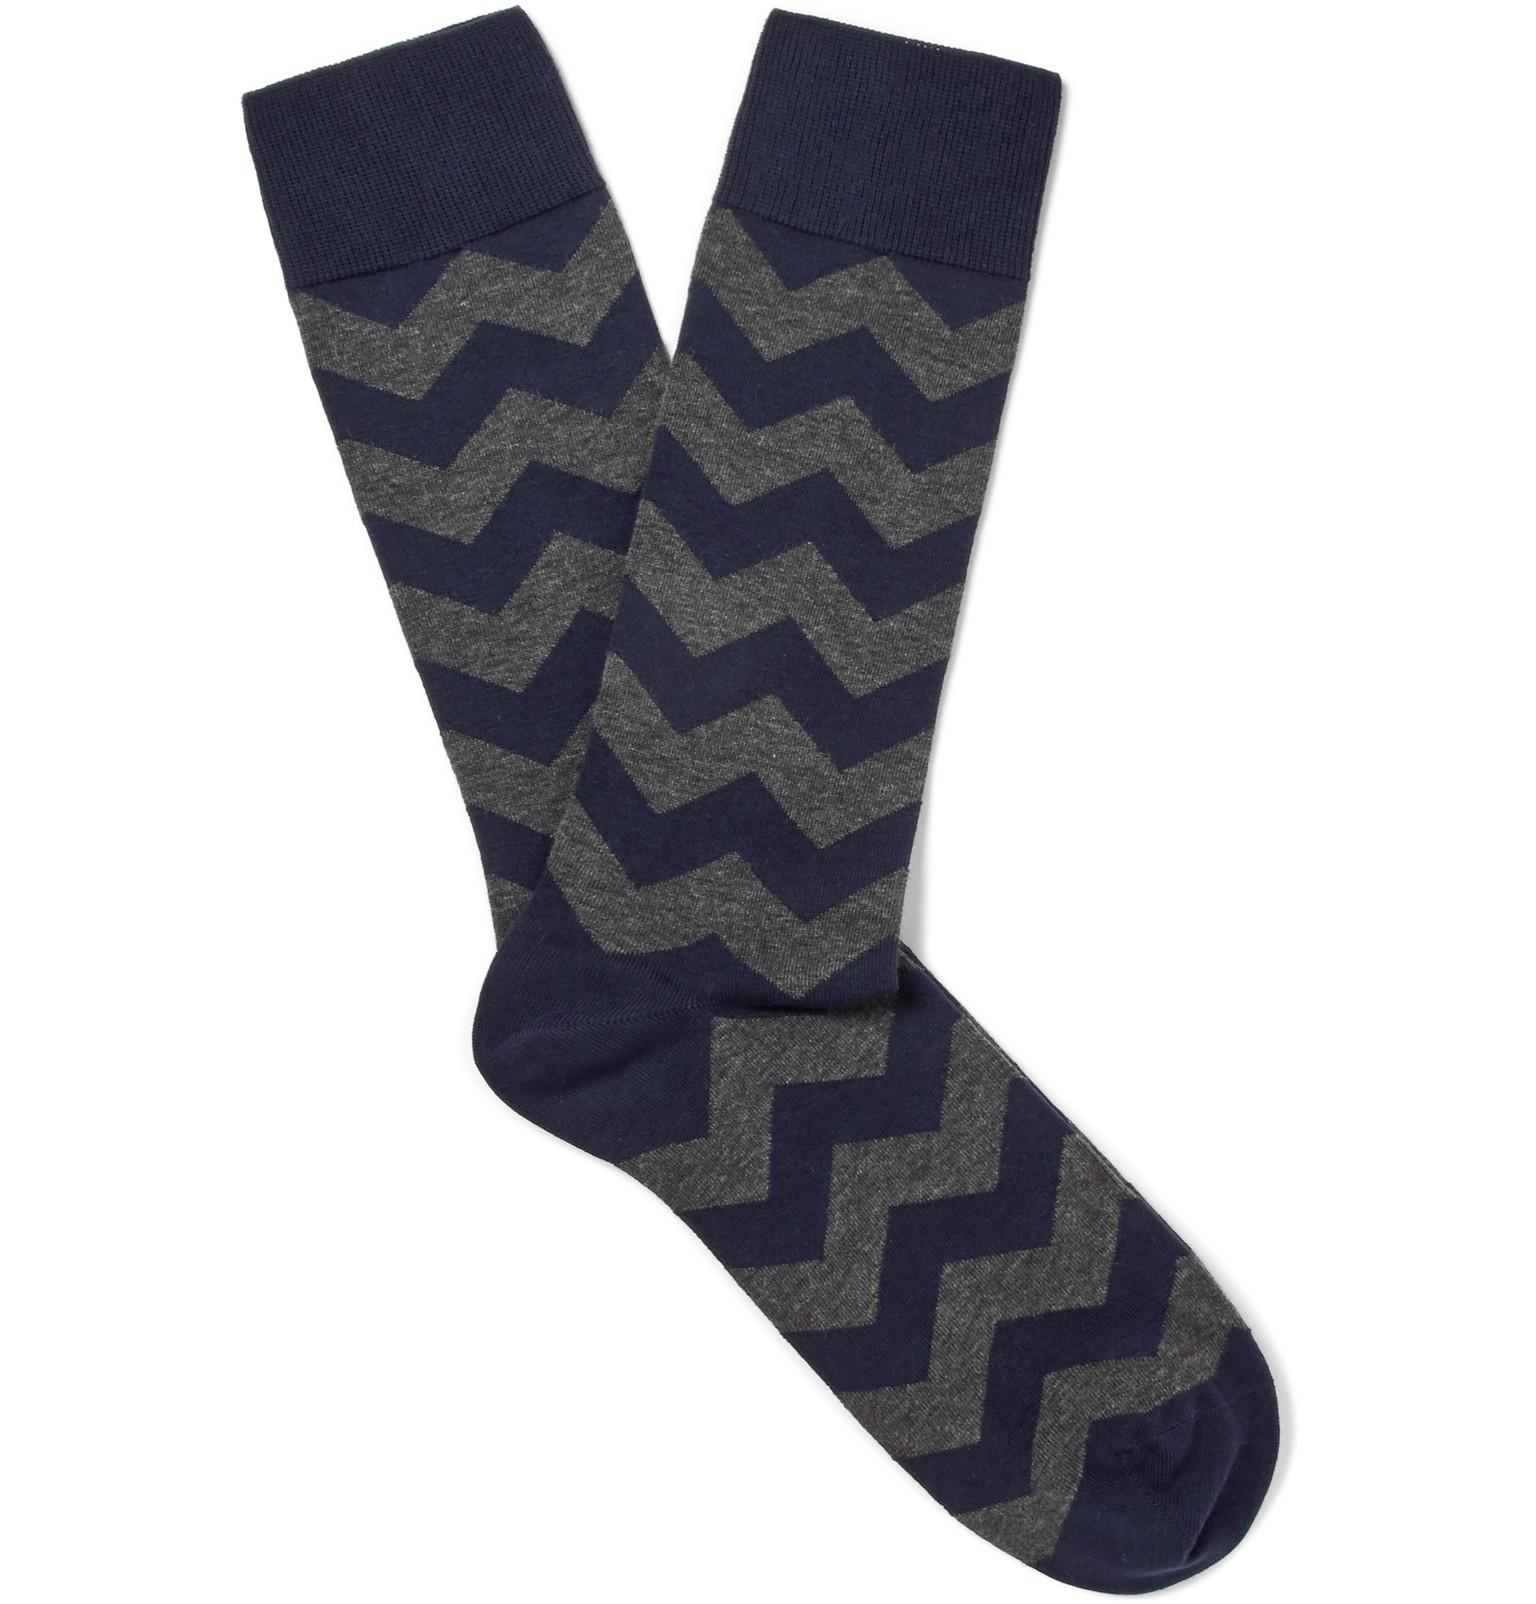 Miller Mélange Stretch Cotton-blend Socks Oliver Spencer Buy Online With Paypal Free Shipping View Particular bTsoQm7